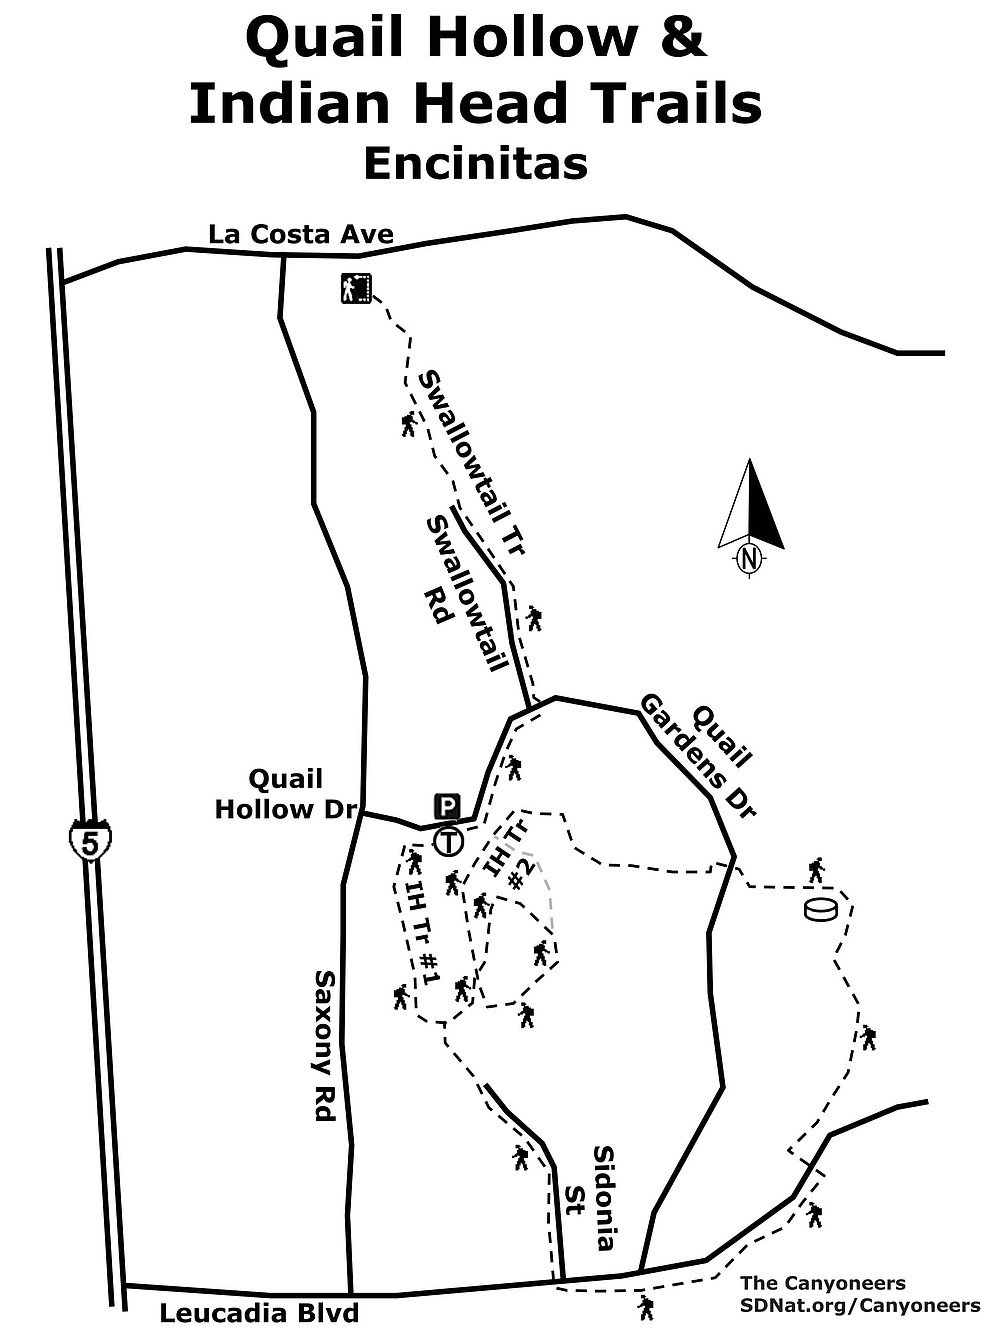 Quail Hollow & Indian Head Trails map